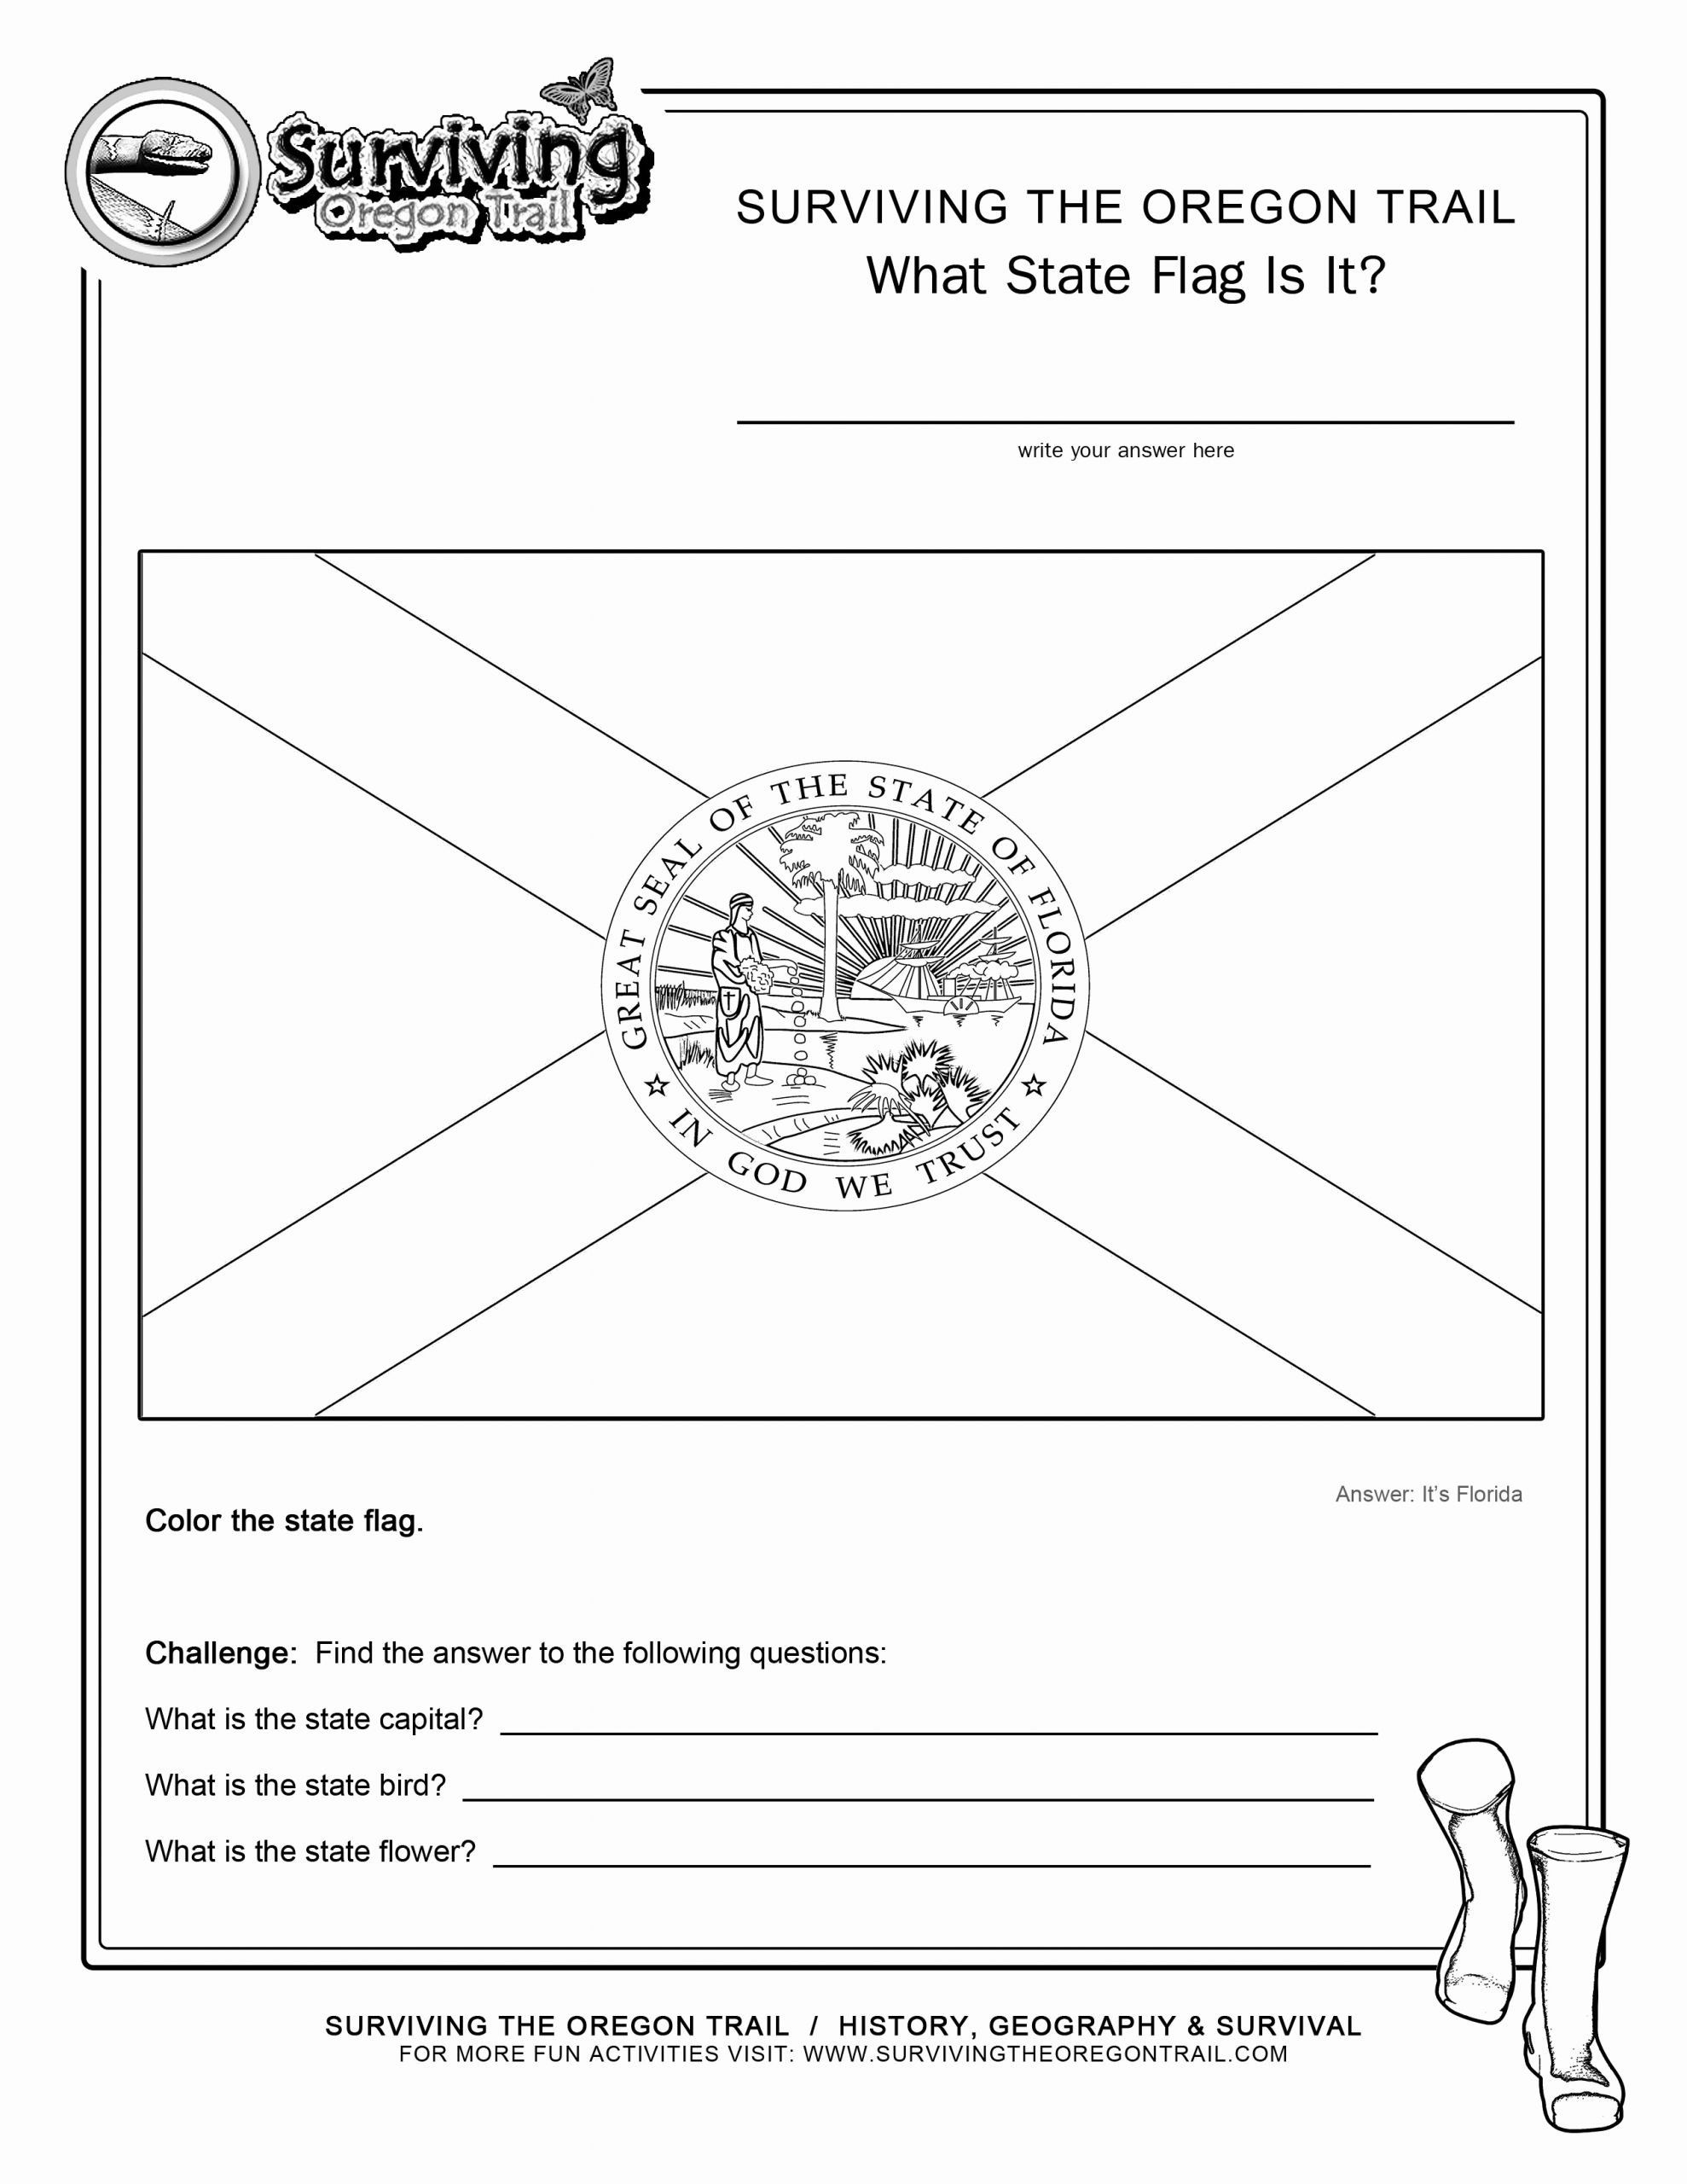 Coloring Letters Online Best Of Coloring Pages For Children That